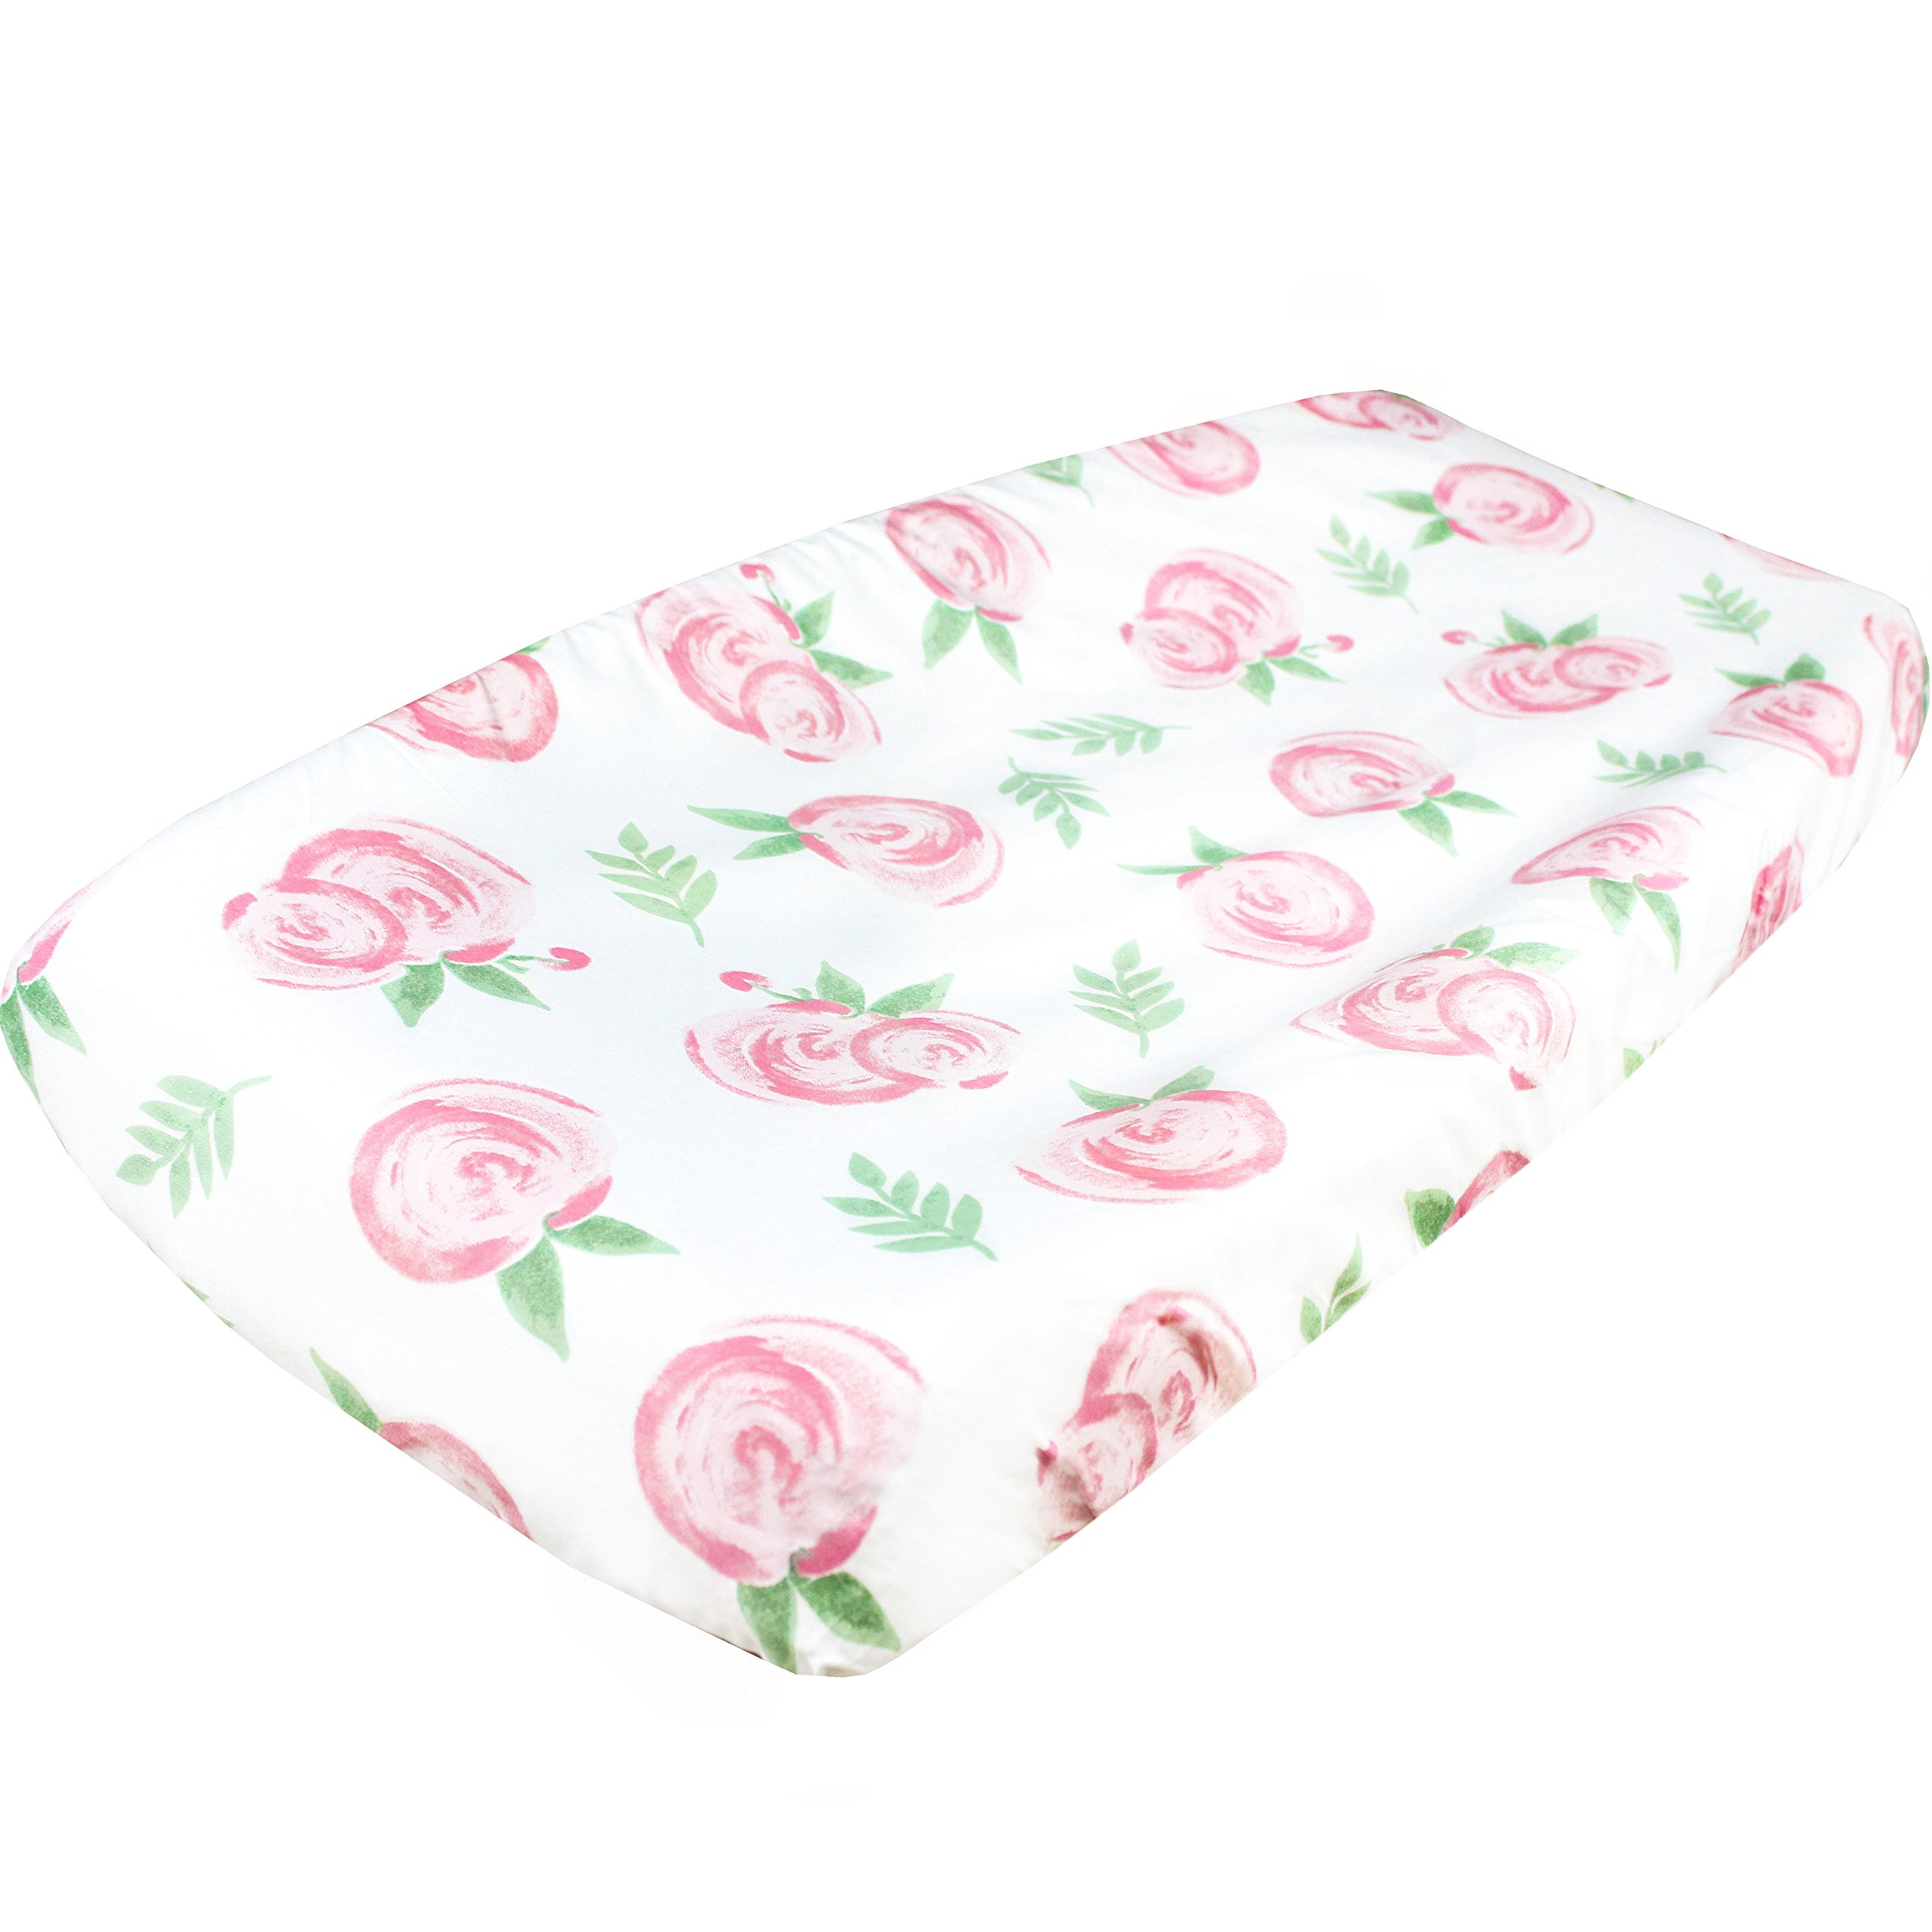 Premium Cotton Diaper Changing Pad Cover''Grace Floral'' by Copper Pearl